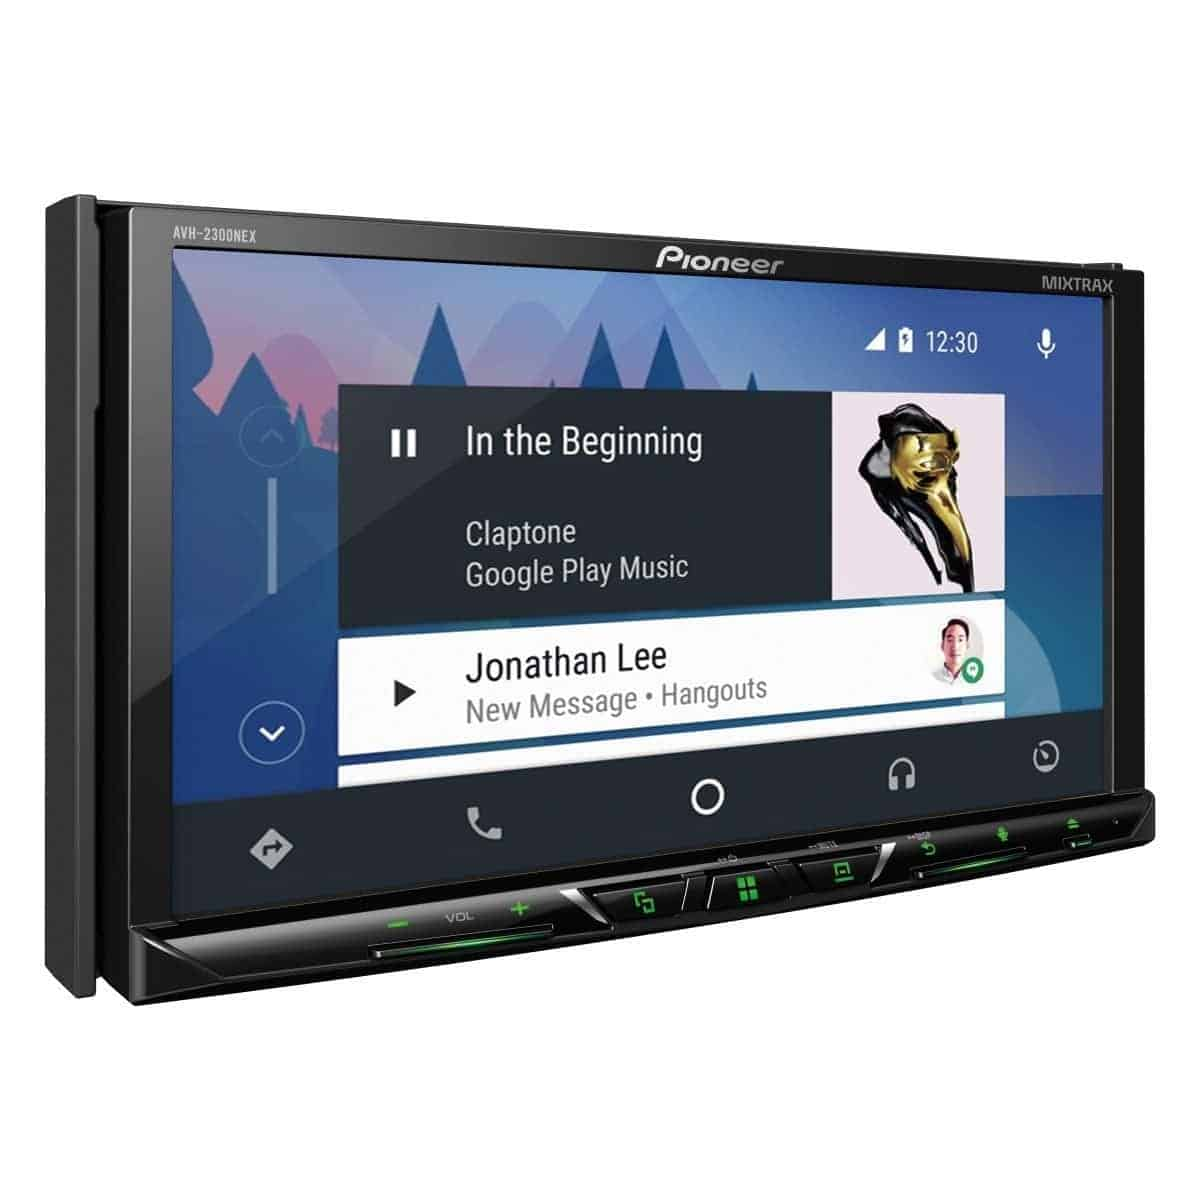 Android auto pioneer s latest head units are now available androidheadlines com